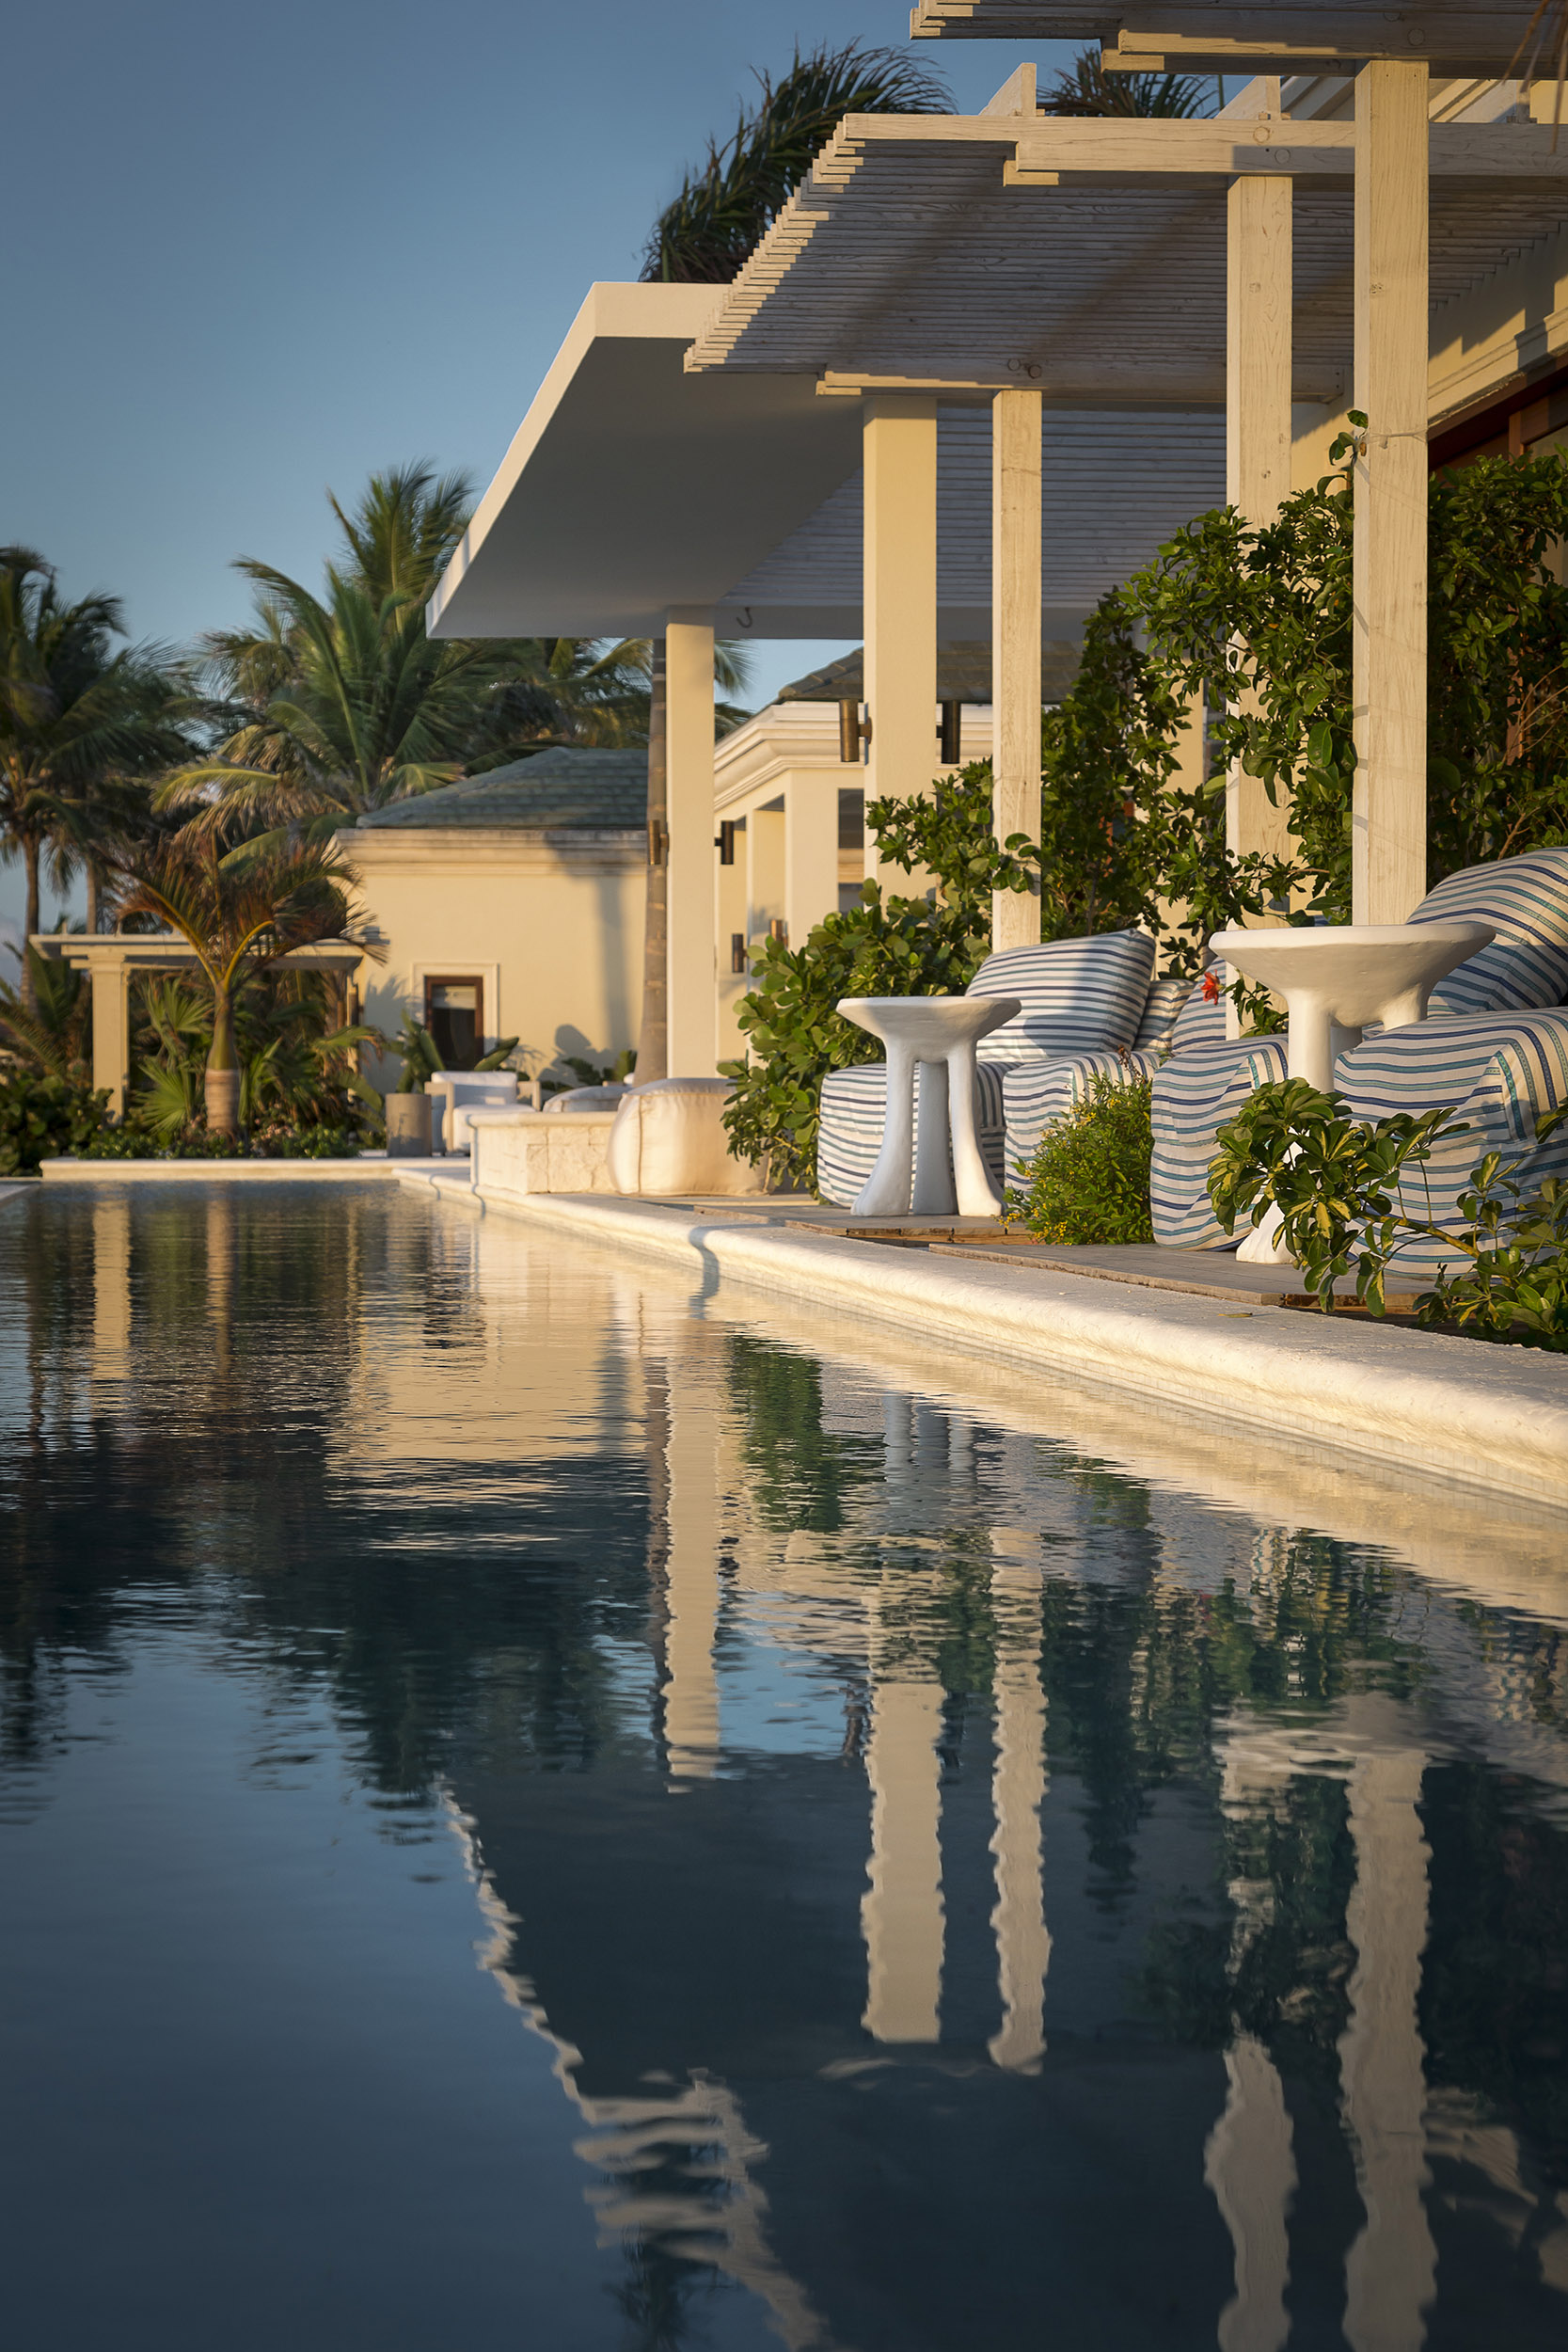 La Dolce Vita - view of the swimming pool and sheltered terraces